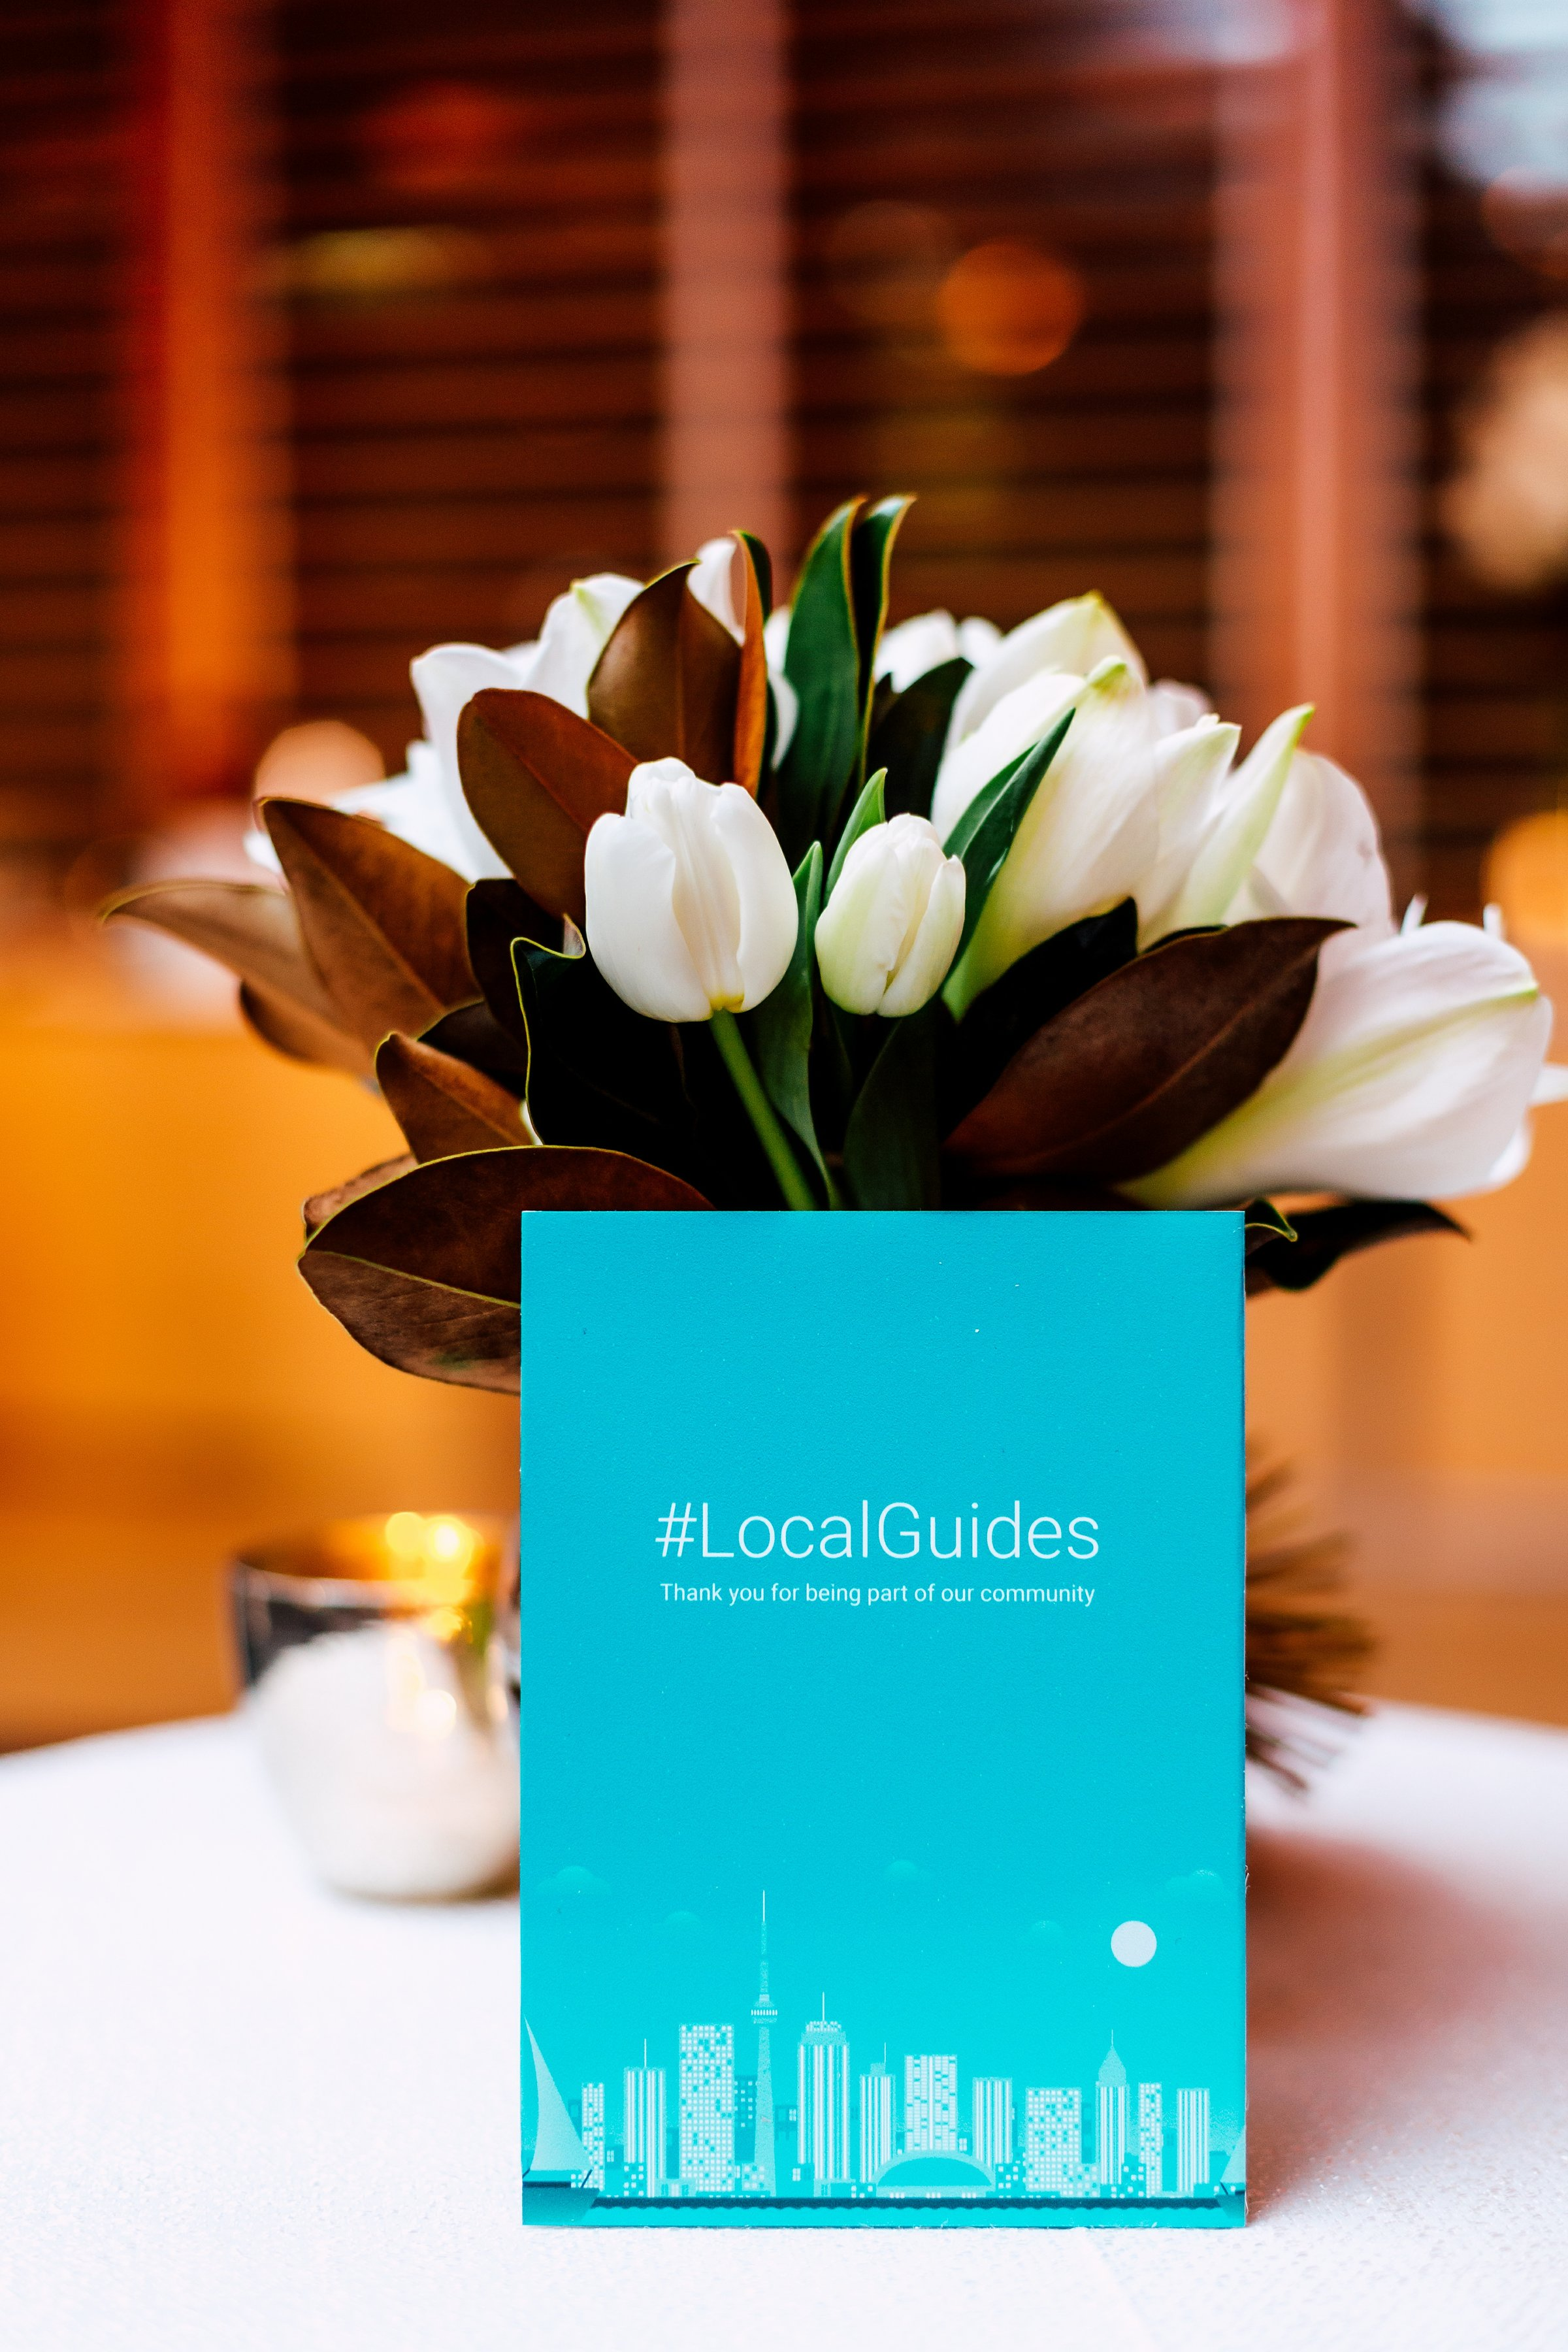 google-local-guides-floral-arrangement